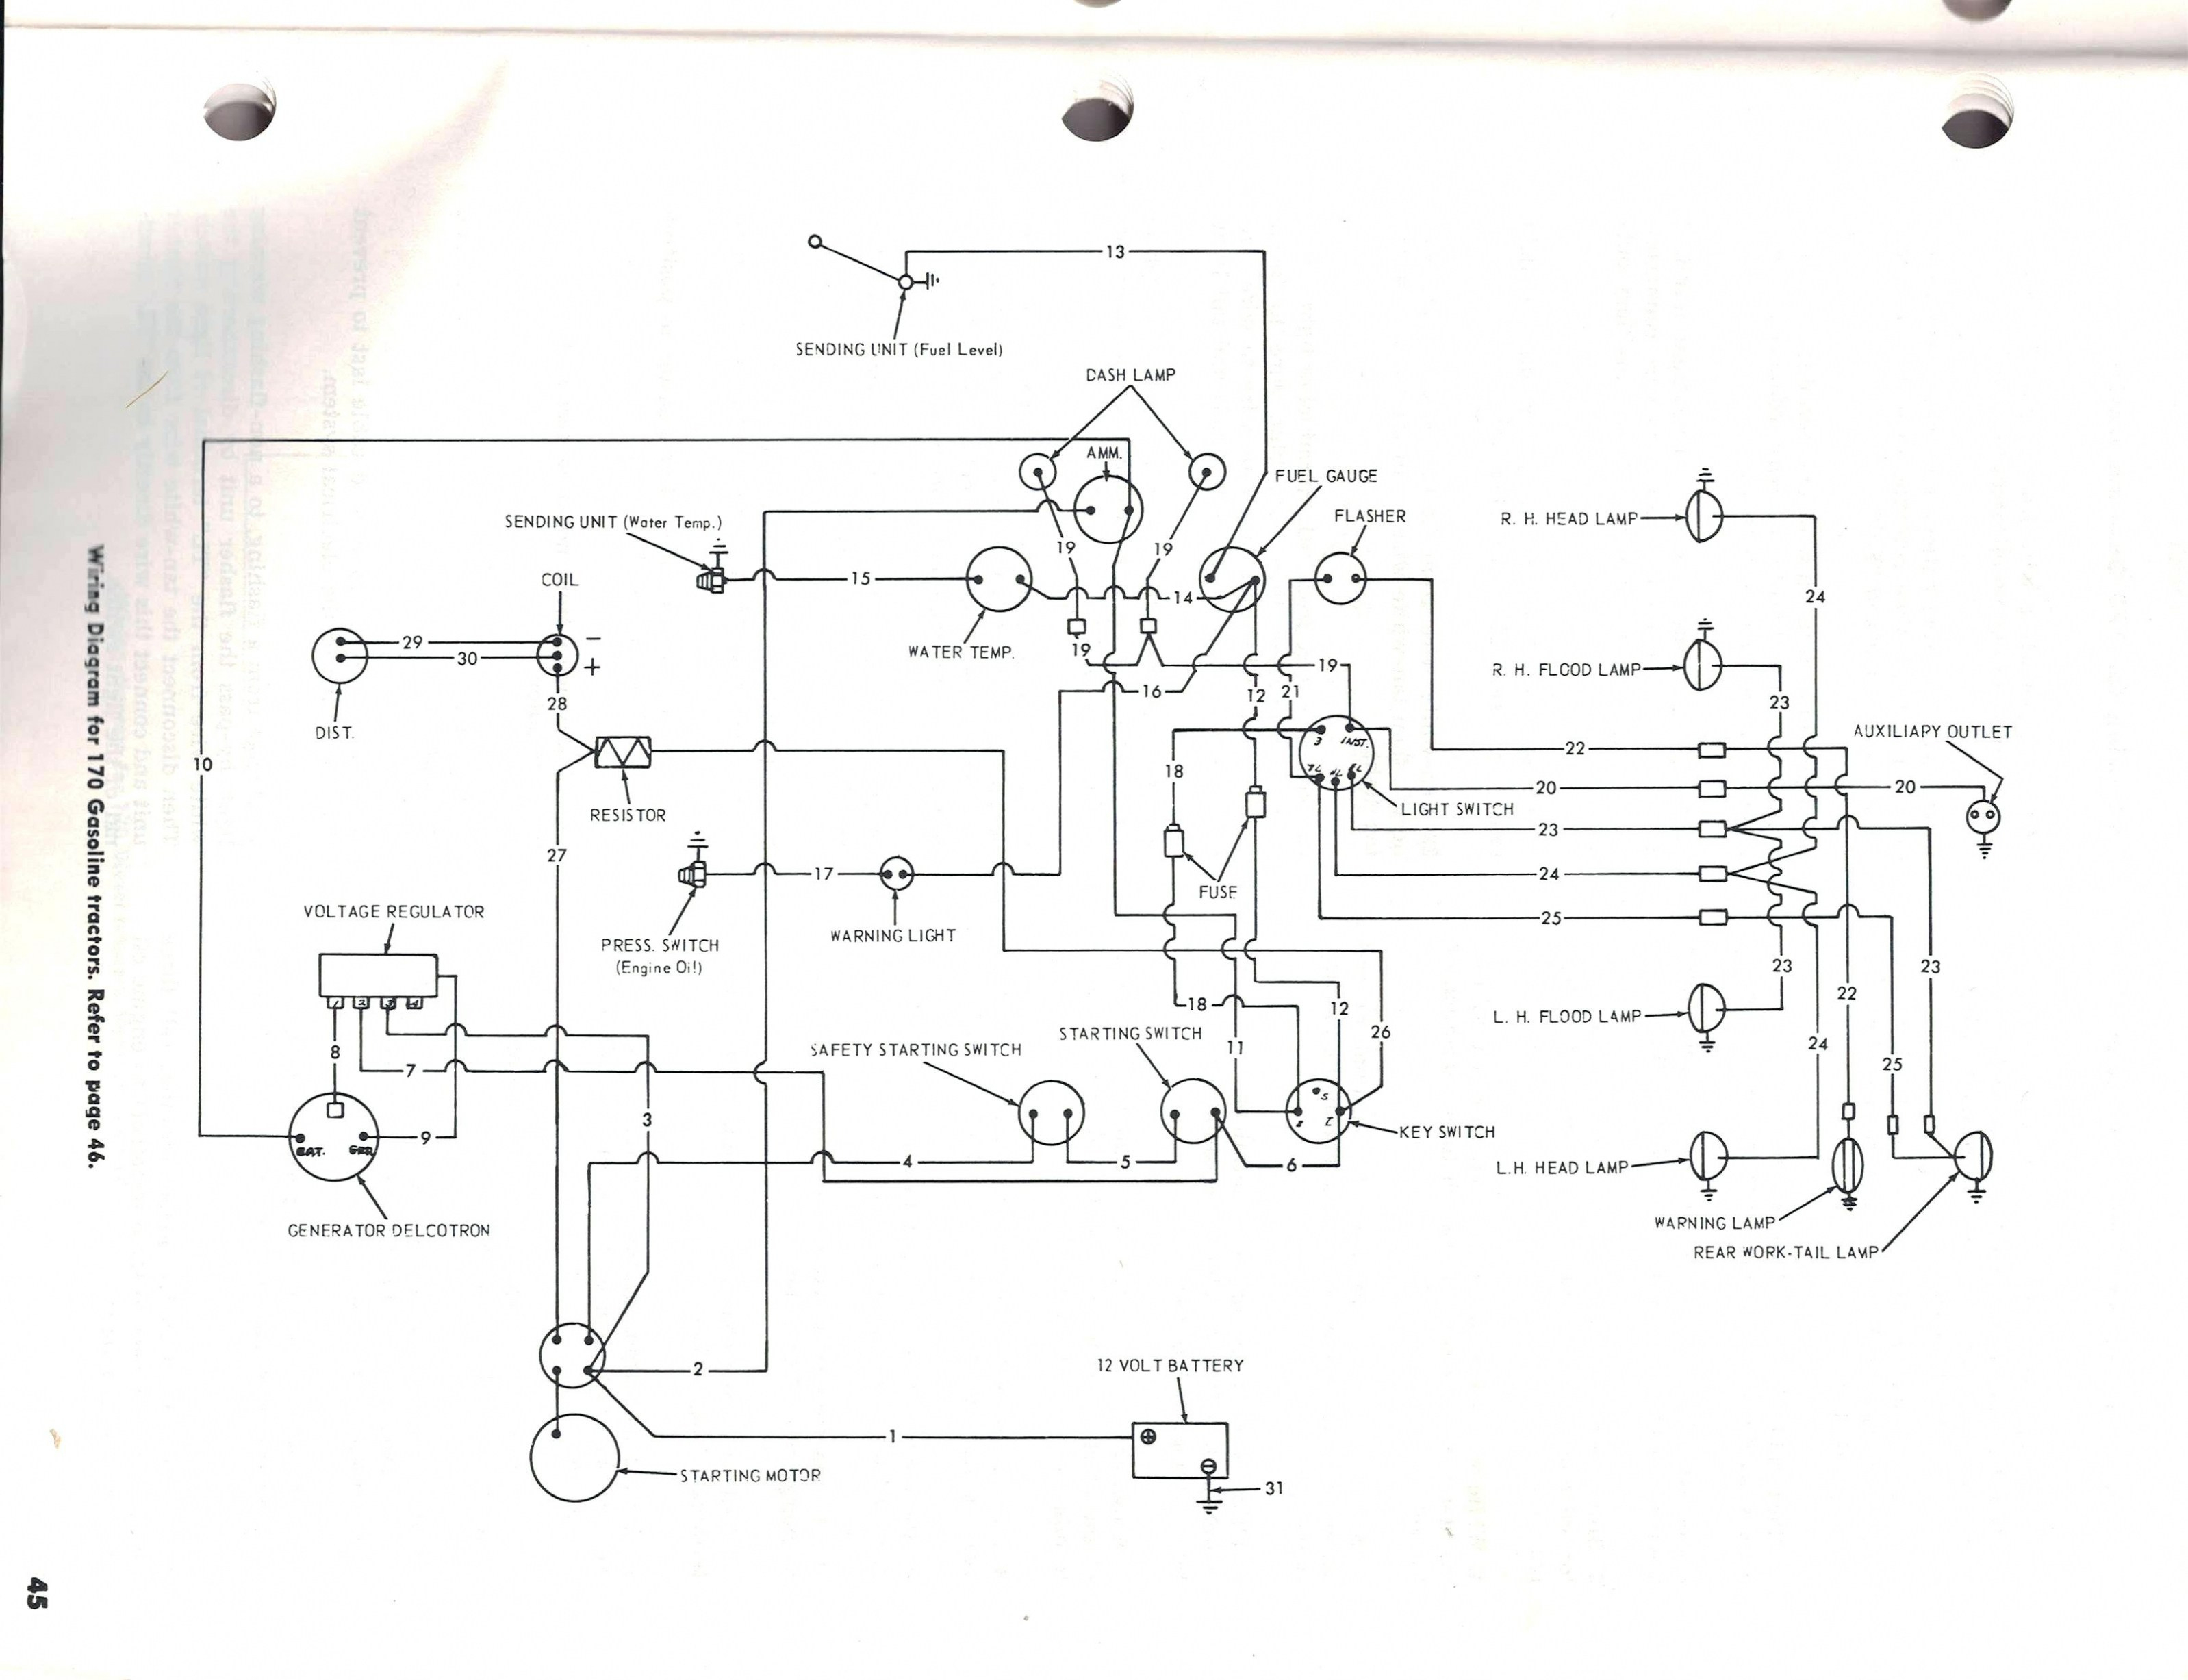 Diagram Naa Ford Tractor Wiring Diagram Full Version Hd Quality Wiring Diagram Isikibis Fanfaradilegnano It